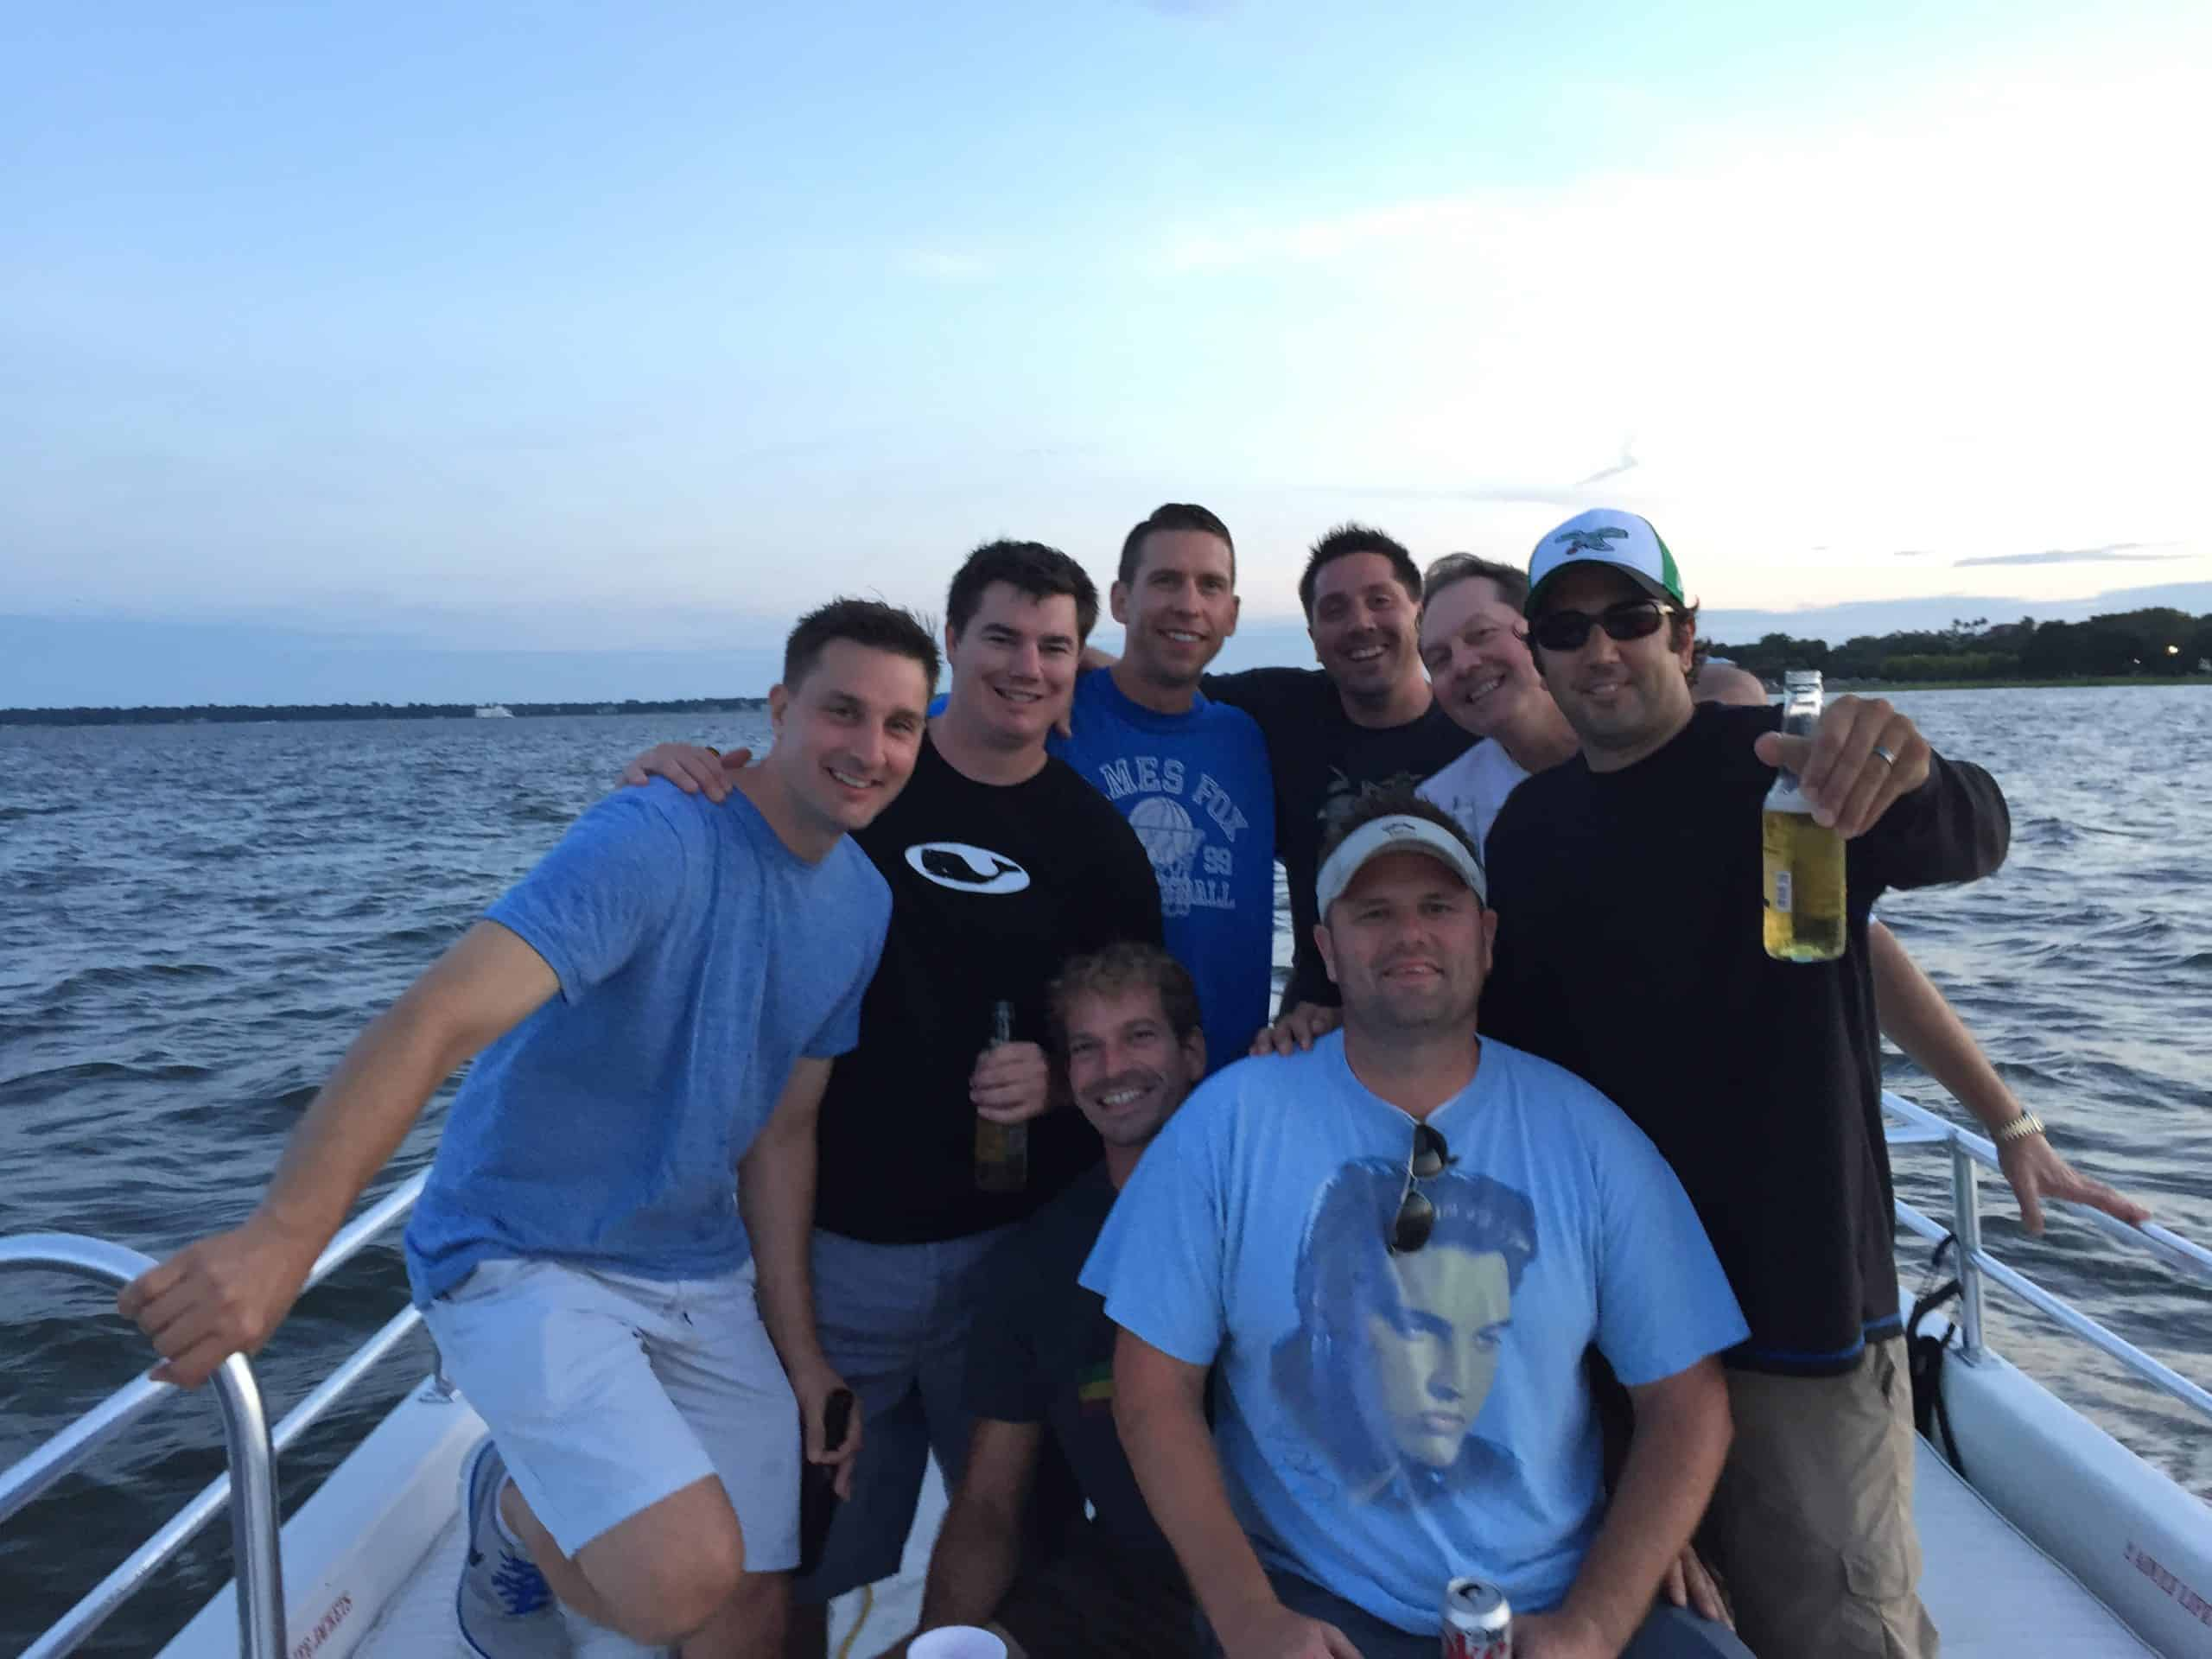 Group of men gathered on the boat. Bachelor and bachelorette boat cruises